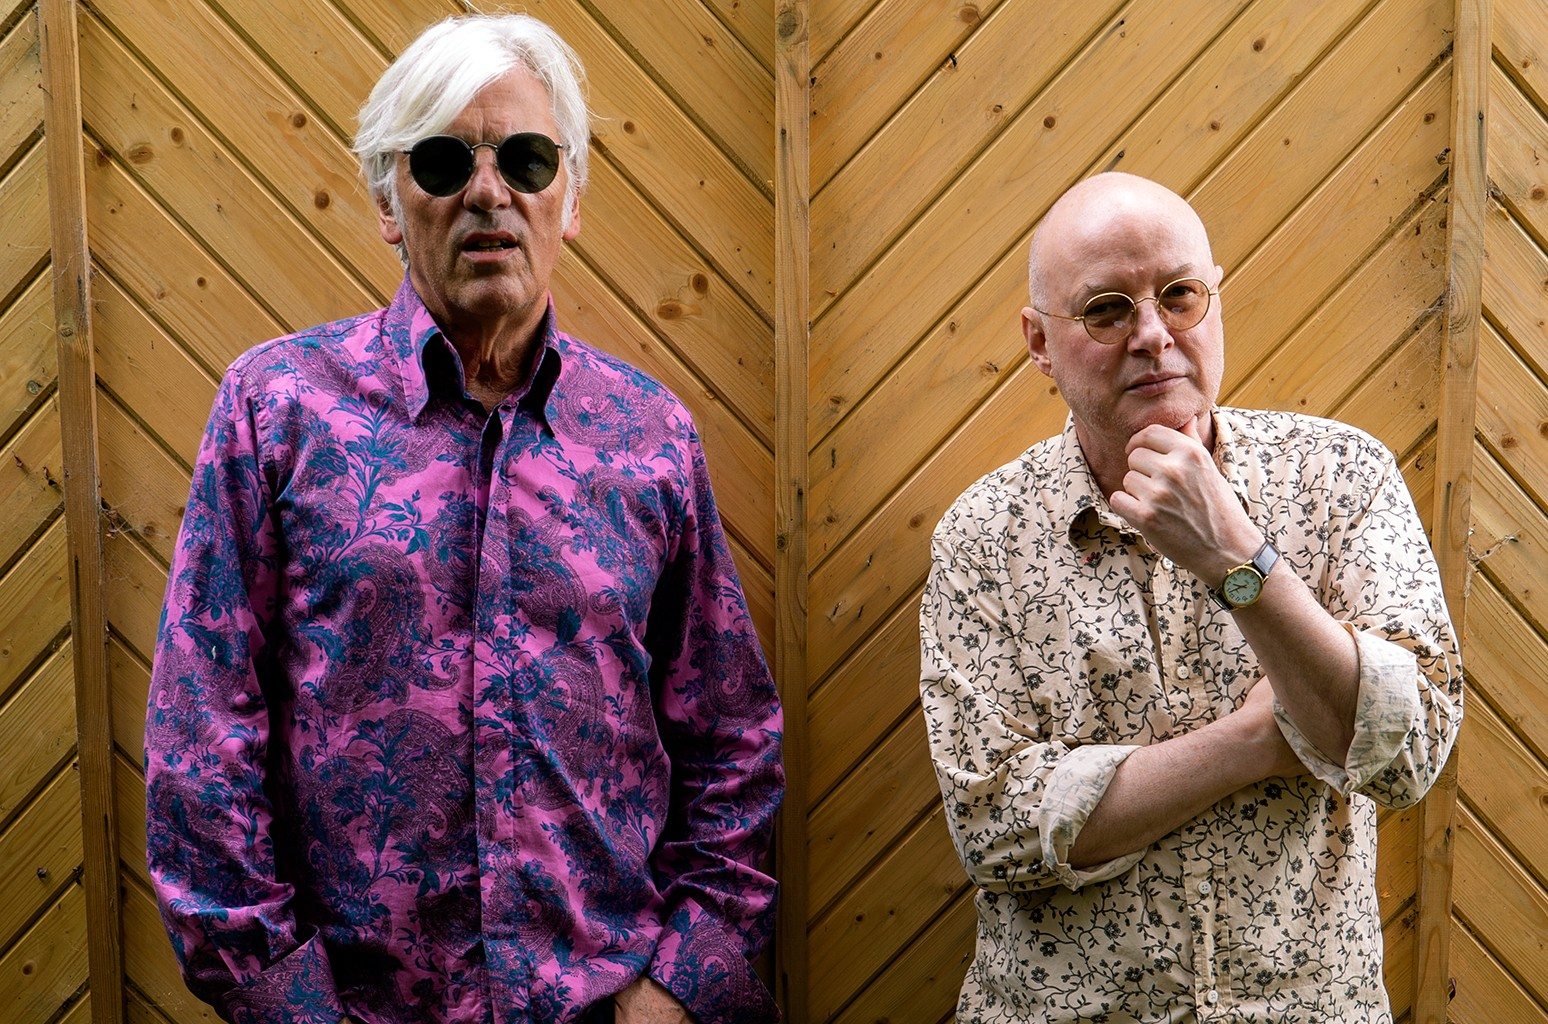 Robyn Hitchcock and Andy Partridge